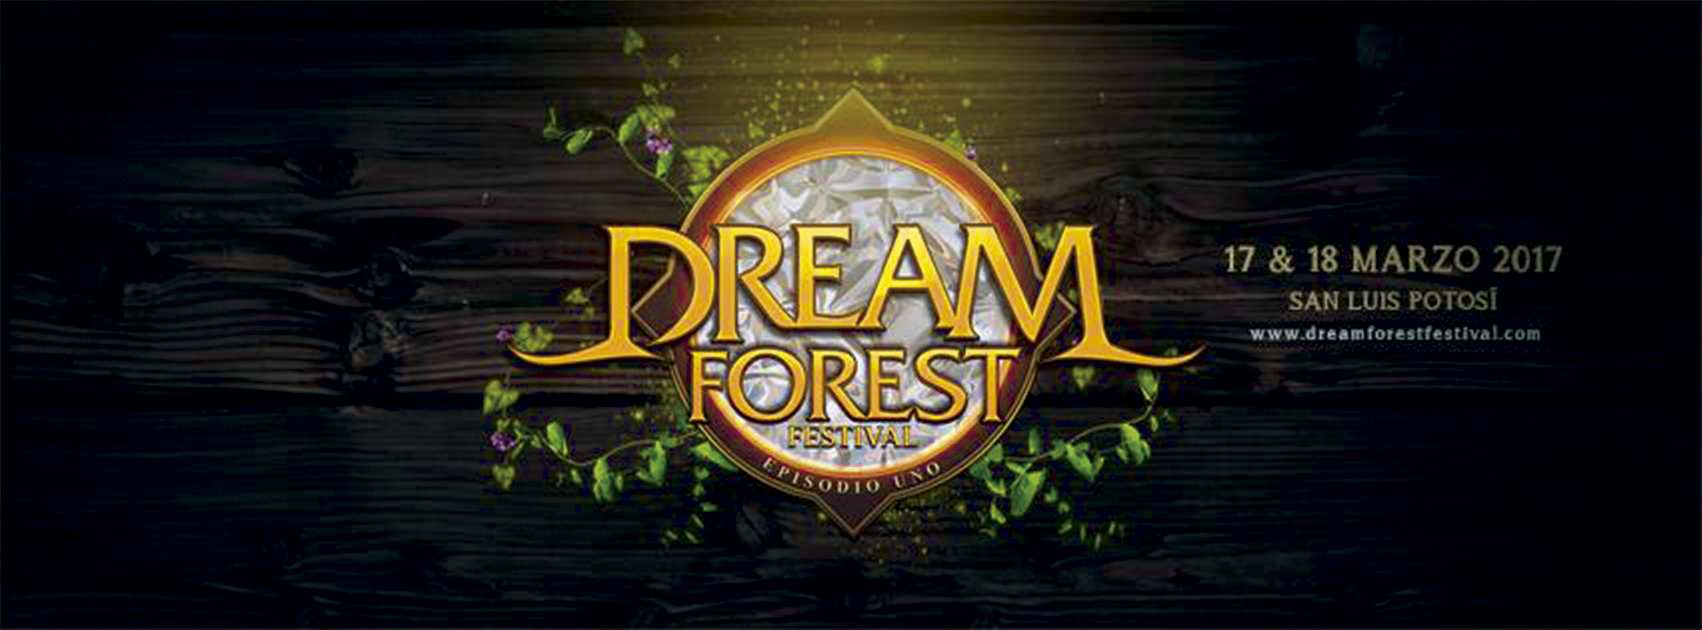 Dream Forest Festival presenta su Line-Up completo